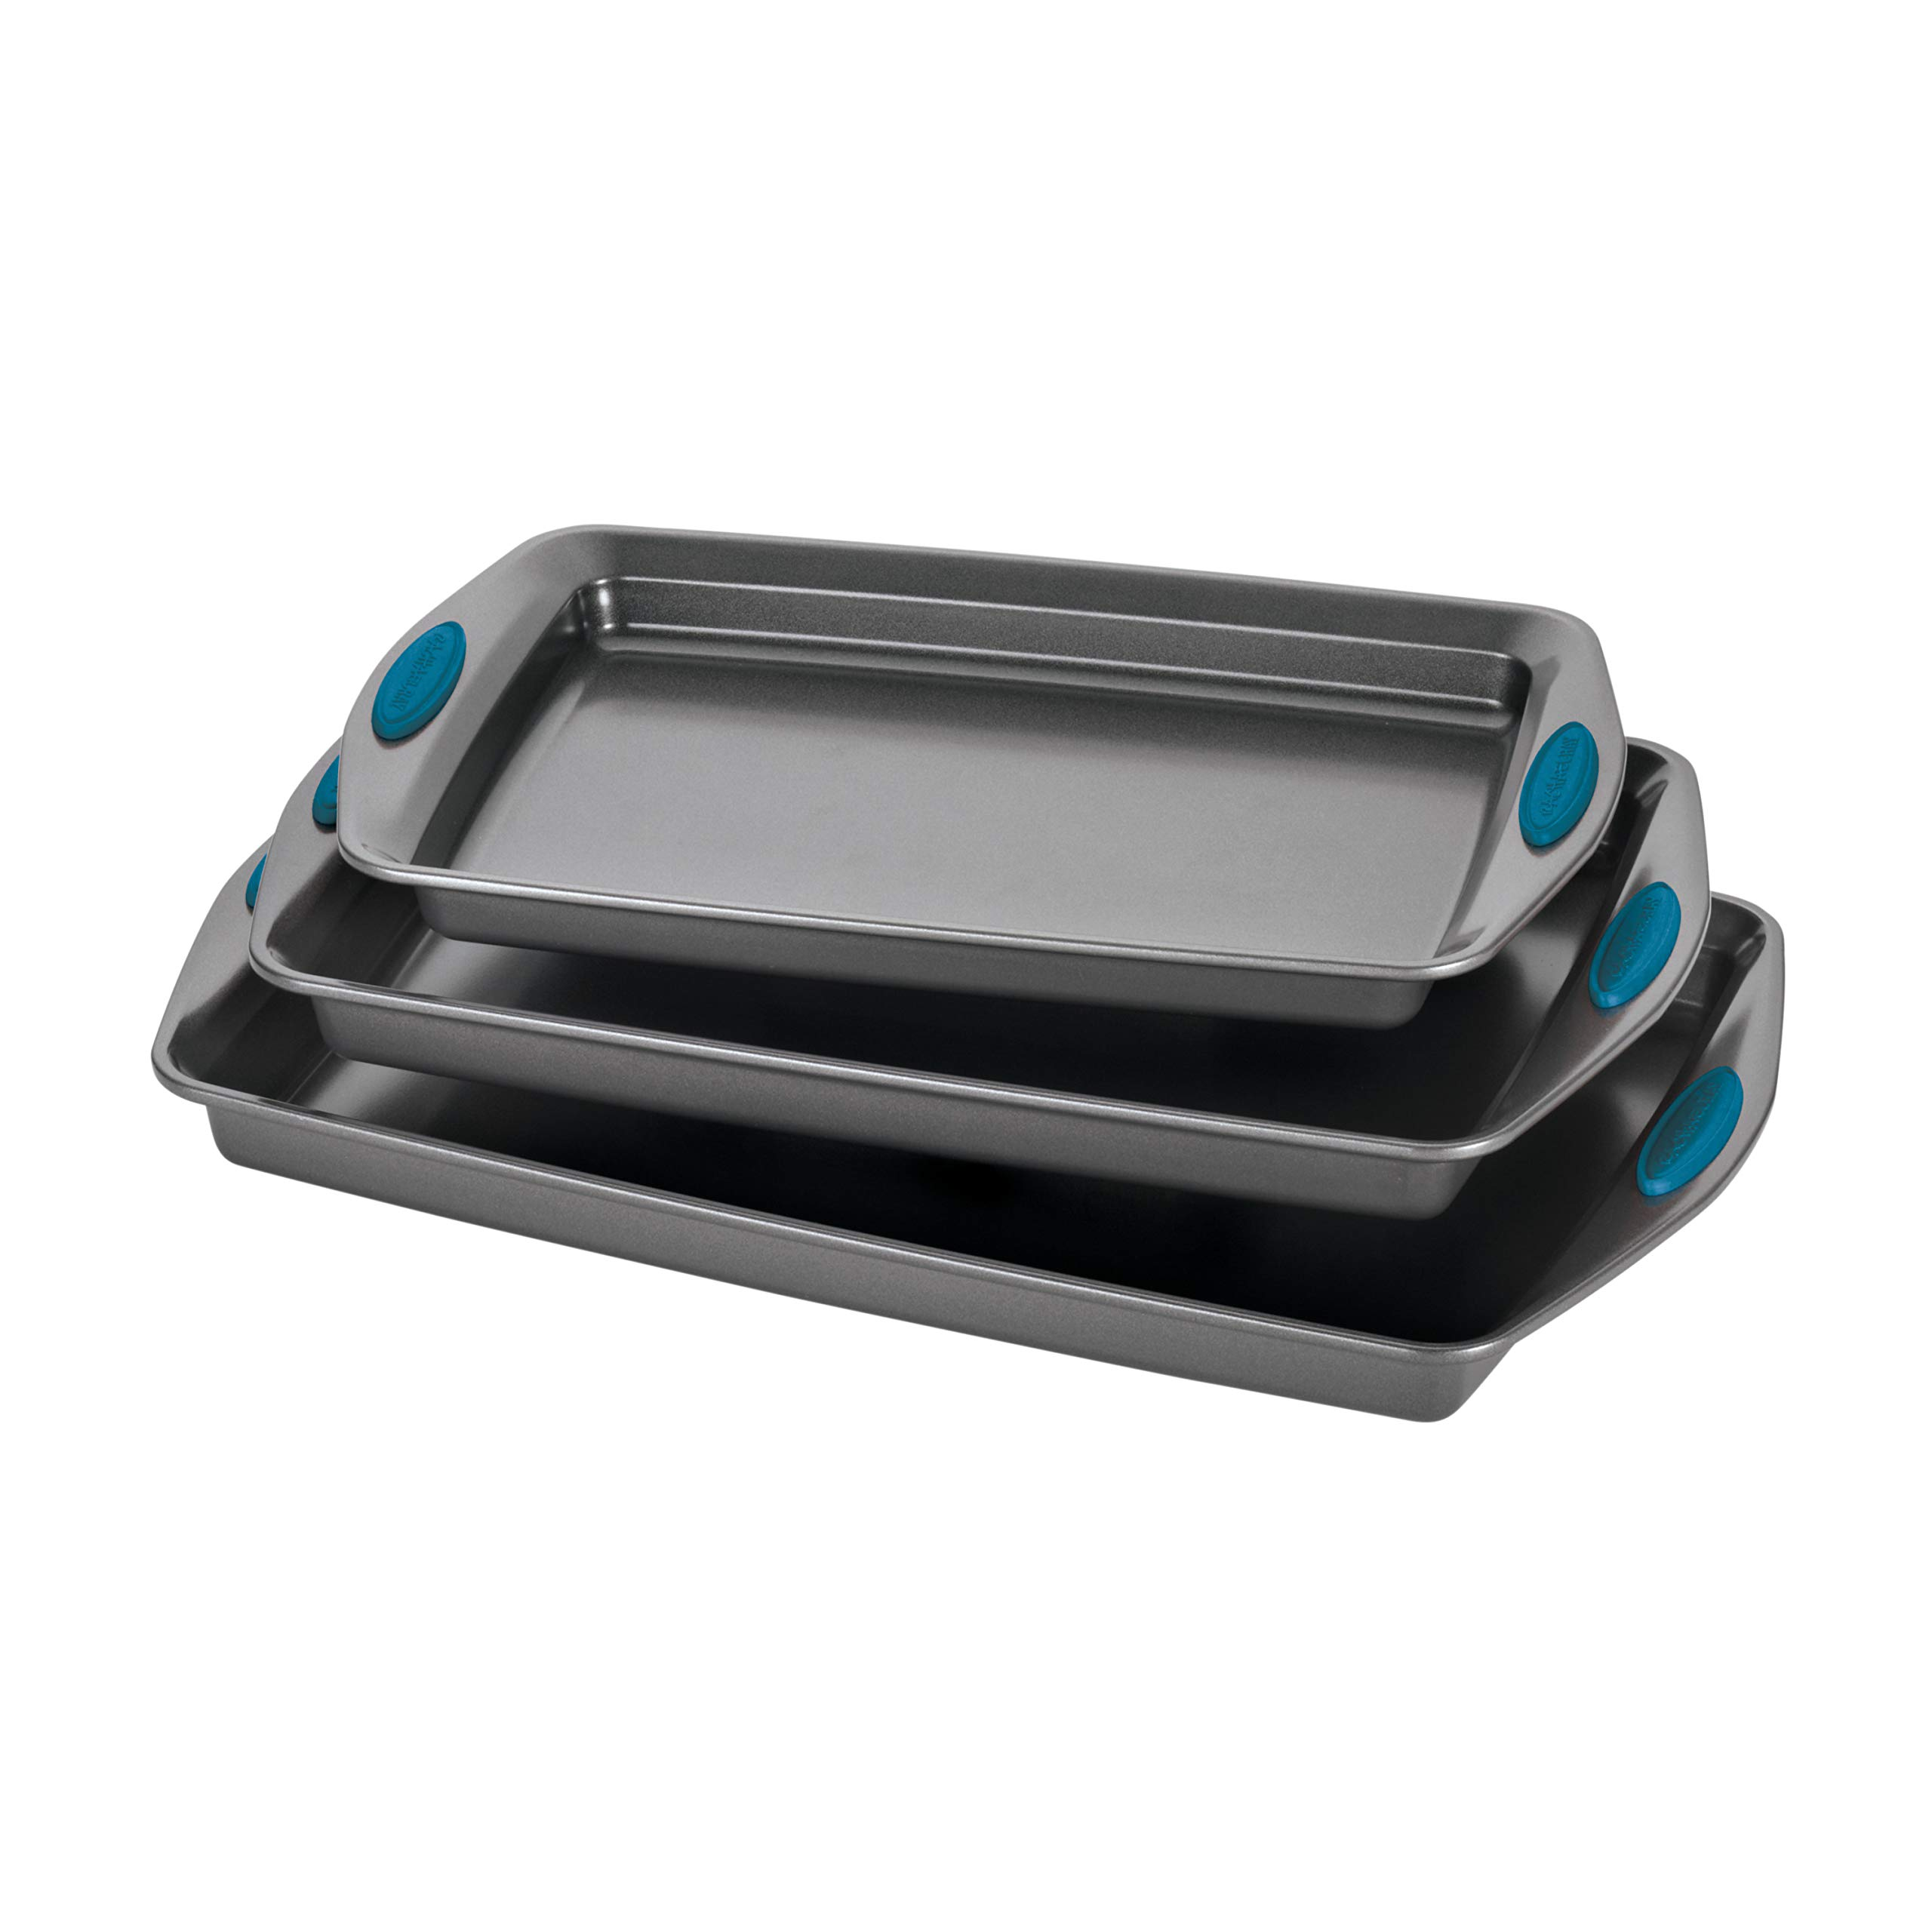 Rachael Ray 47425 Nonstick Bakeware Set with Grips, Nonstick Cookie Sheets / Baking Sheets - 3 Piece, Gray with Marine Blue Grips by Rachael Ray